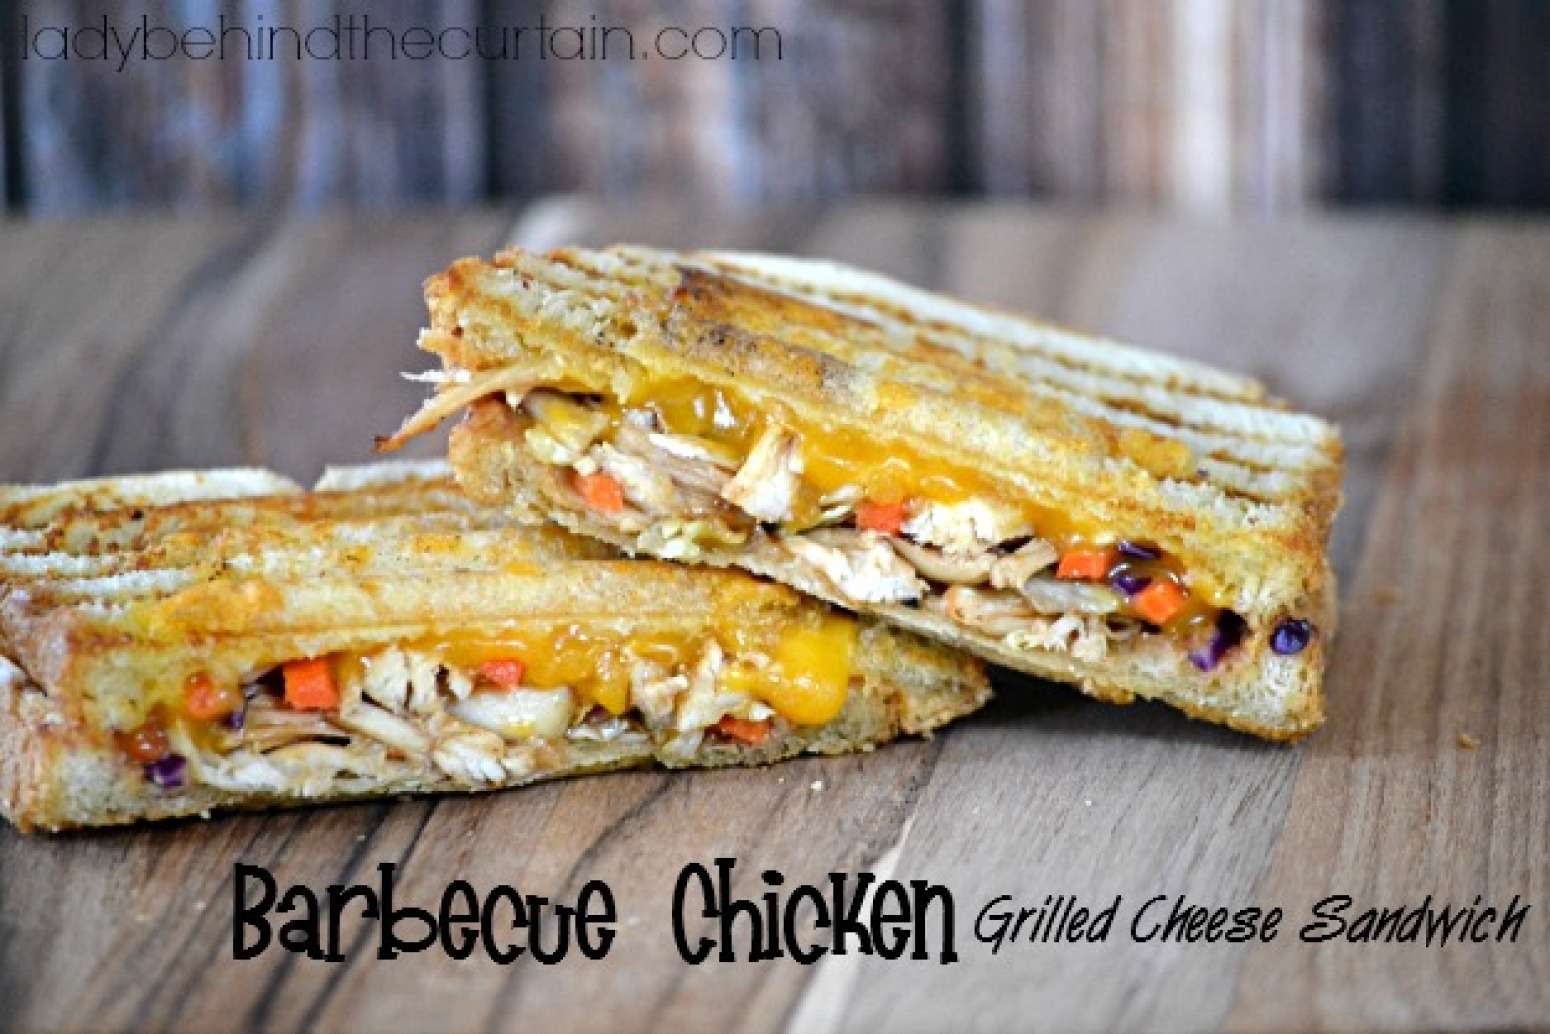 Barbecue Chicken Grilled Cheese Sandwich Recipe | Just A Pinch Recipes